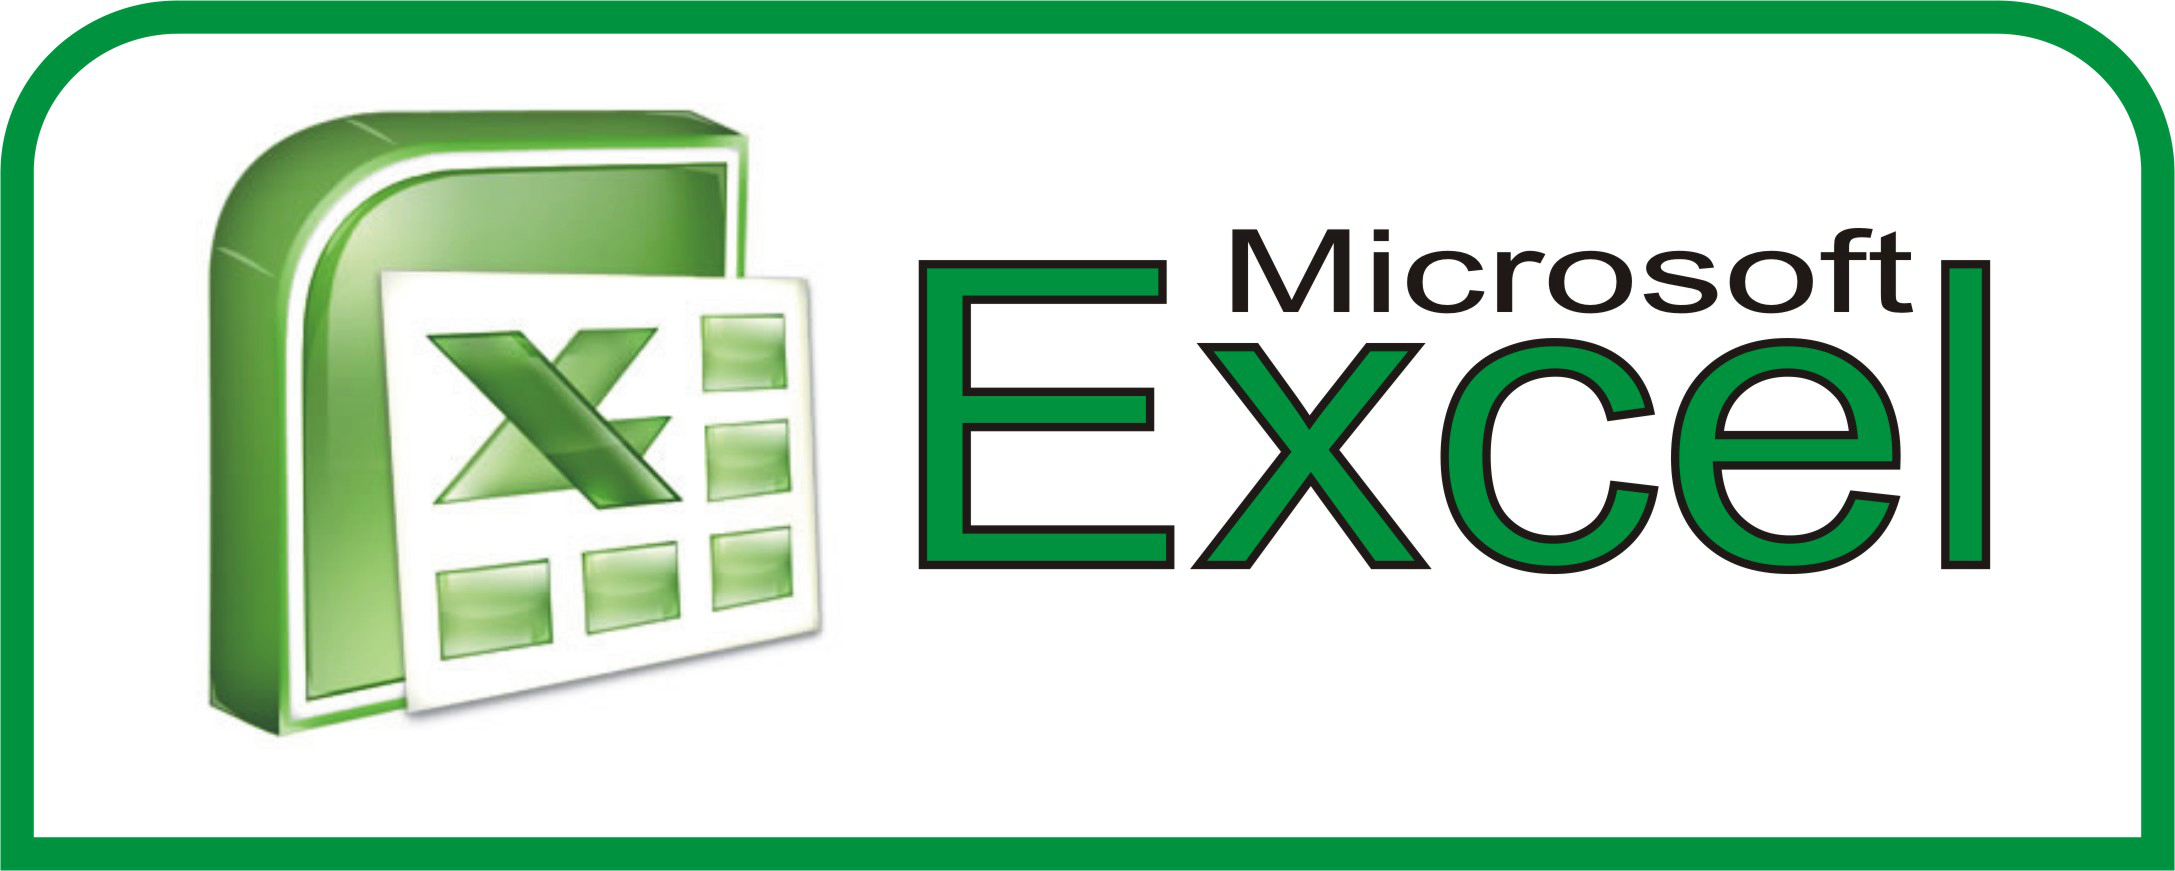 Ediblewildsus  Pleasant  Excel Shortcuts You Probably Didnt Know About  Techdissected With Fetching Excel  Help Besides Time Function Excel Furthermore Moving Average In Excel With Agreeable How To Make A Chart In Excel  Also Excel Generate Random Number In Addition Excel Countif Unique And Find Mean In Excel As Well As Open Csv File In Excel Additionally Formatting In Excel From Techdissectedcom With Ediblewildsus  Fetching  Excel Shortcuts You Probably Didnt Know About  Techdissected With Agreeable Excel  Help Besides Time Function Excel Furthermore Moving Average In Excel And Pleasant How To Make A Chart In Excel  Also Excel Generate Random Number In Addition Excel Countif Unique From Techdissectedcom